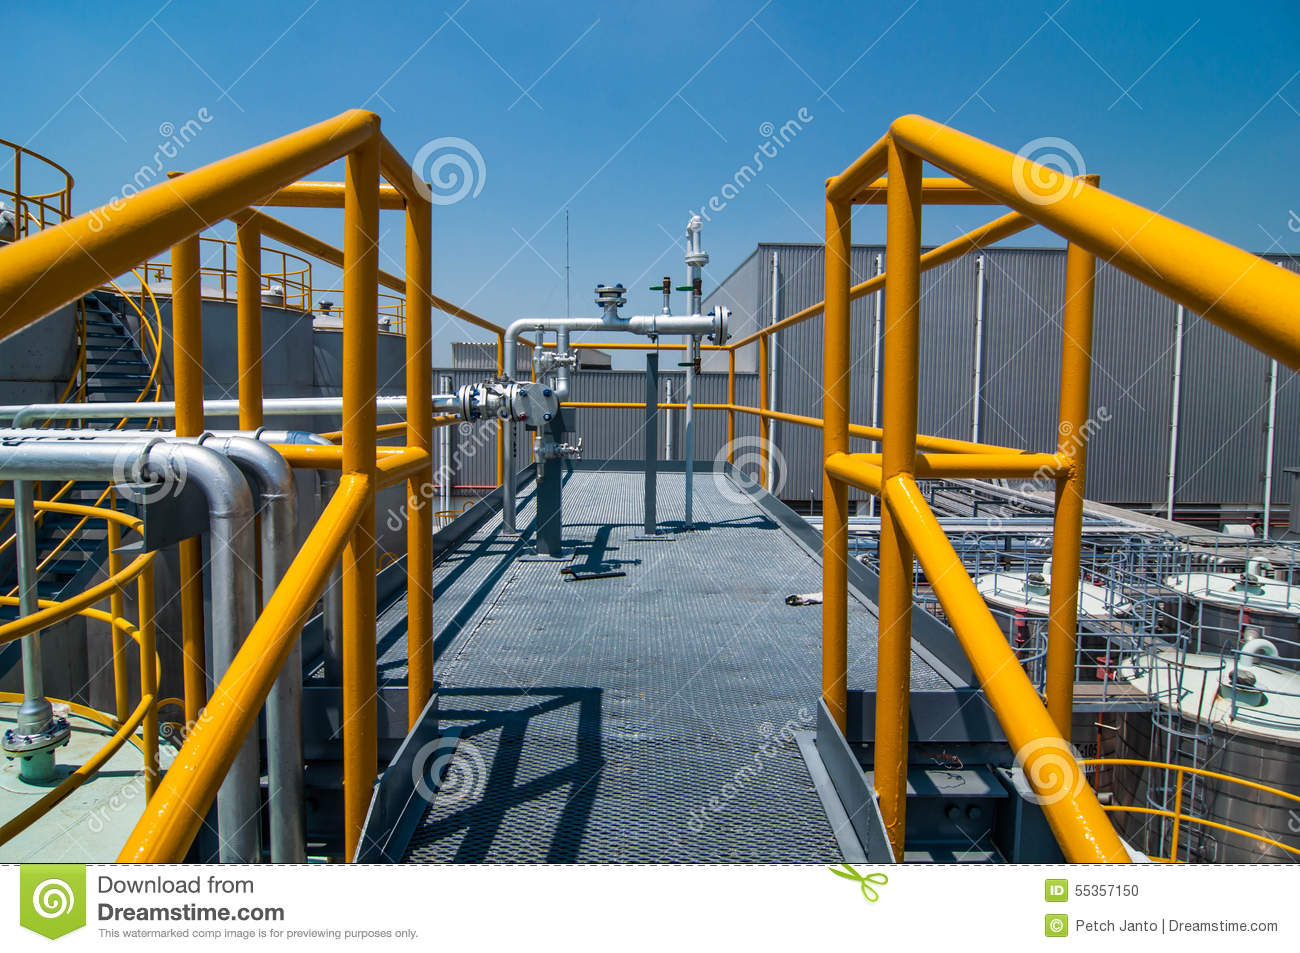 Plate Form Structure Process Oil Pipeline Stock Photo - Image ...